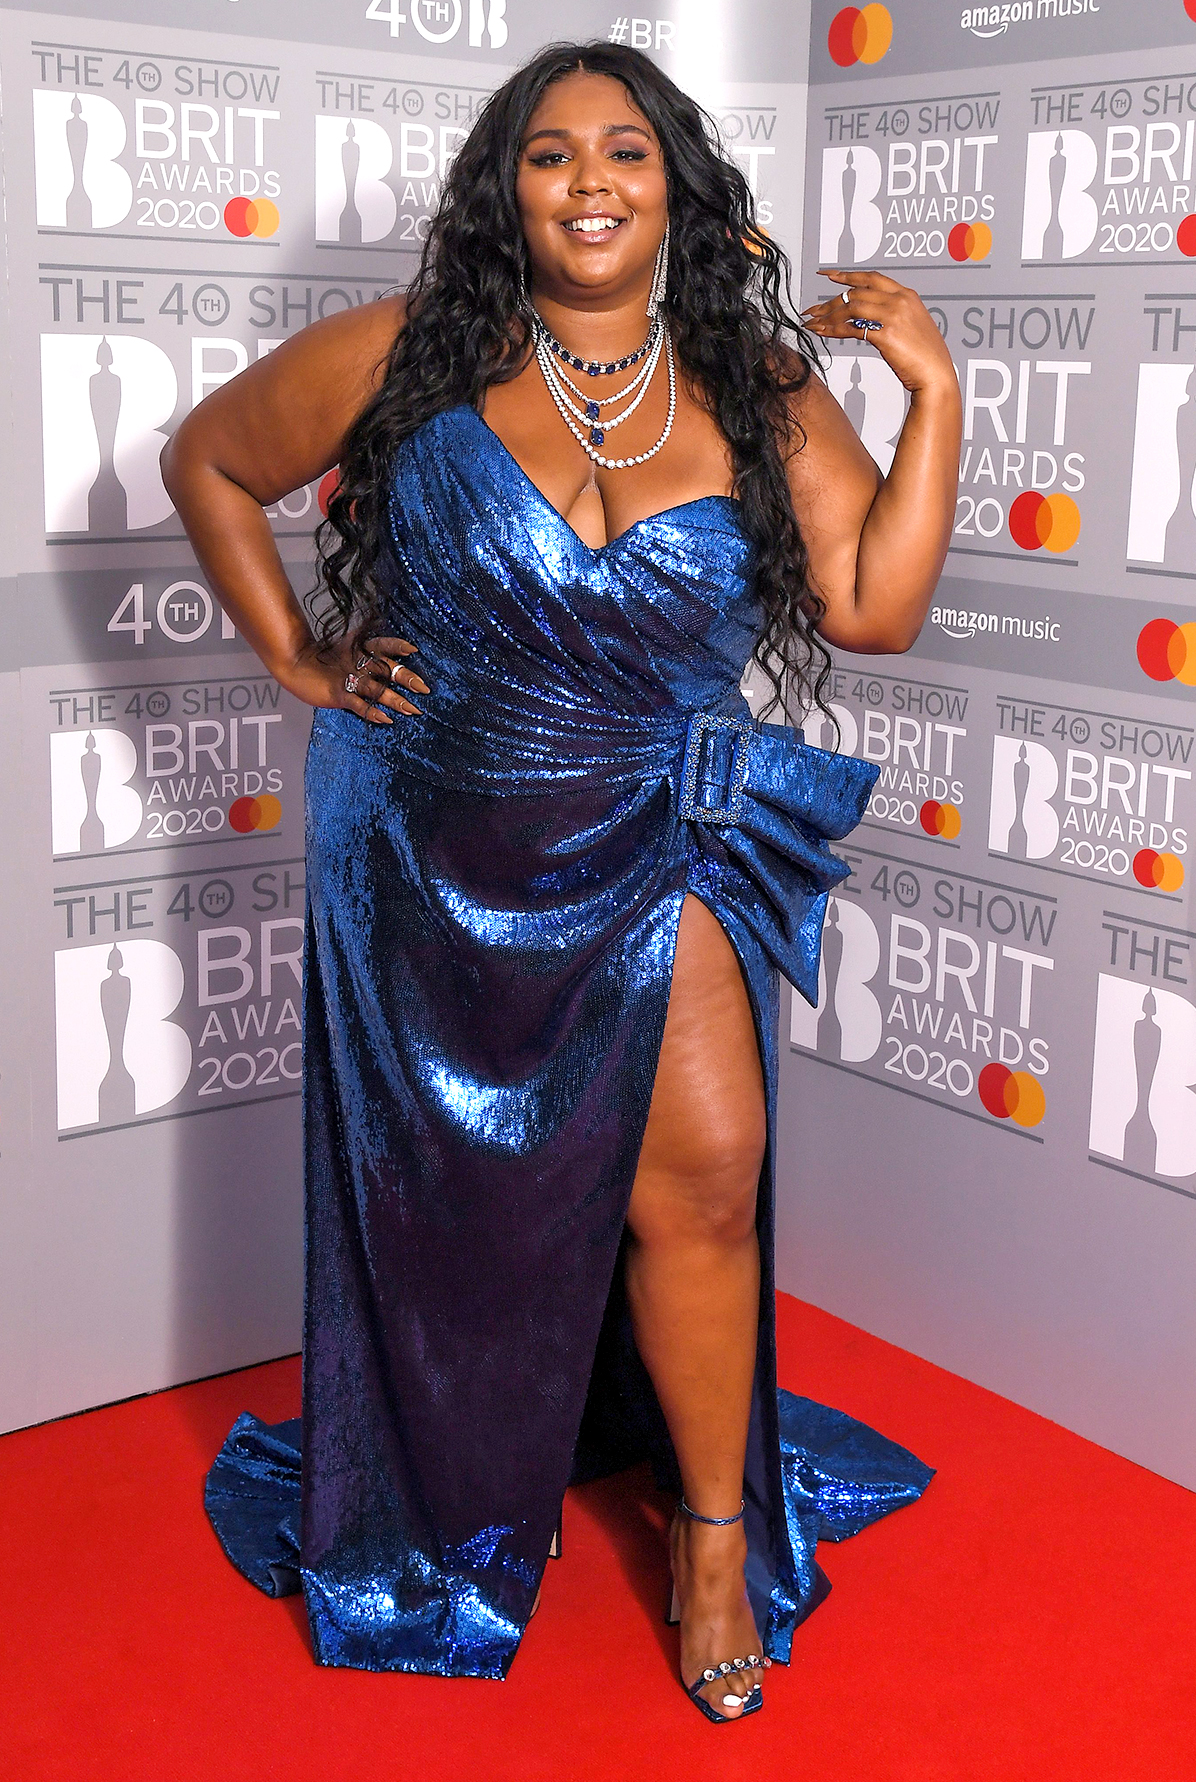 Lizzo 40th Brit Awards, Press Room, The O2 Arena, London, UK - 18 Feb 2020 Wearing Dundas, Custom